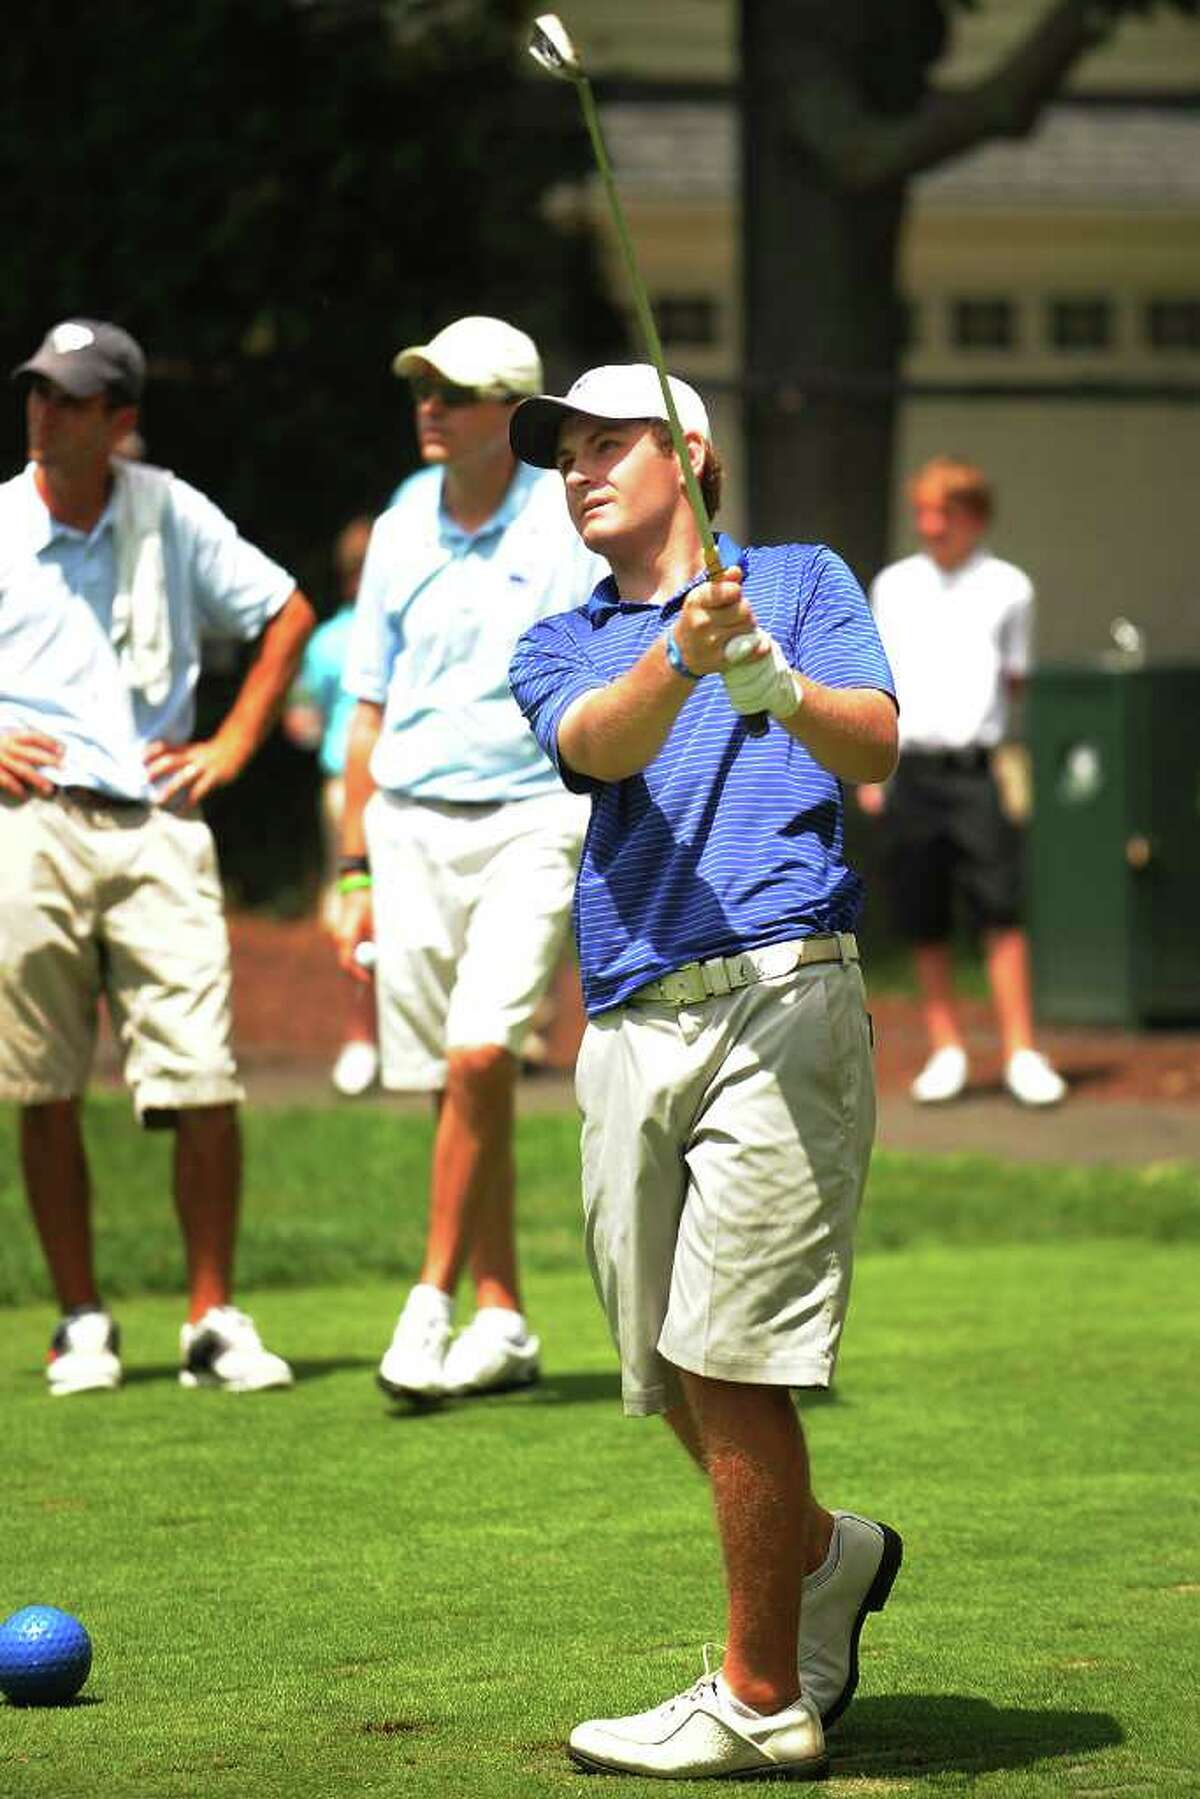 Brian Murphy of Brooklawn Country Club watches his tee shot on the par three 10th during the third round of the Connecticut Open golf tournament at Brooklawn Country Club in Fairfield on Wednesday, July 27, 2011.